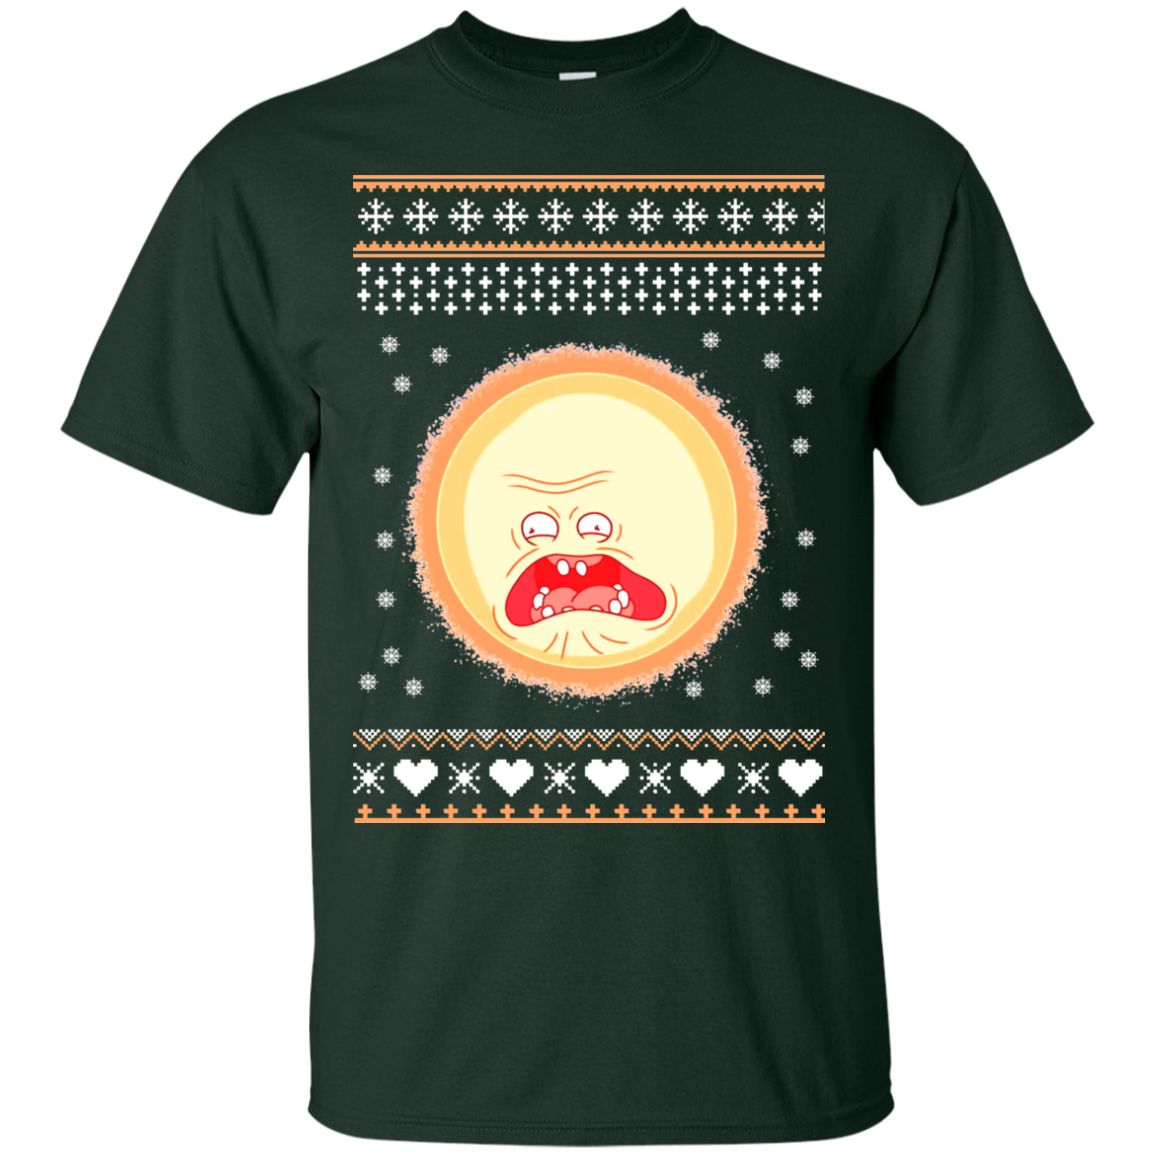 Rick and morty screaming sun png. Christmas sweater teedragons